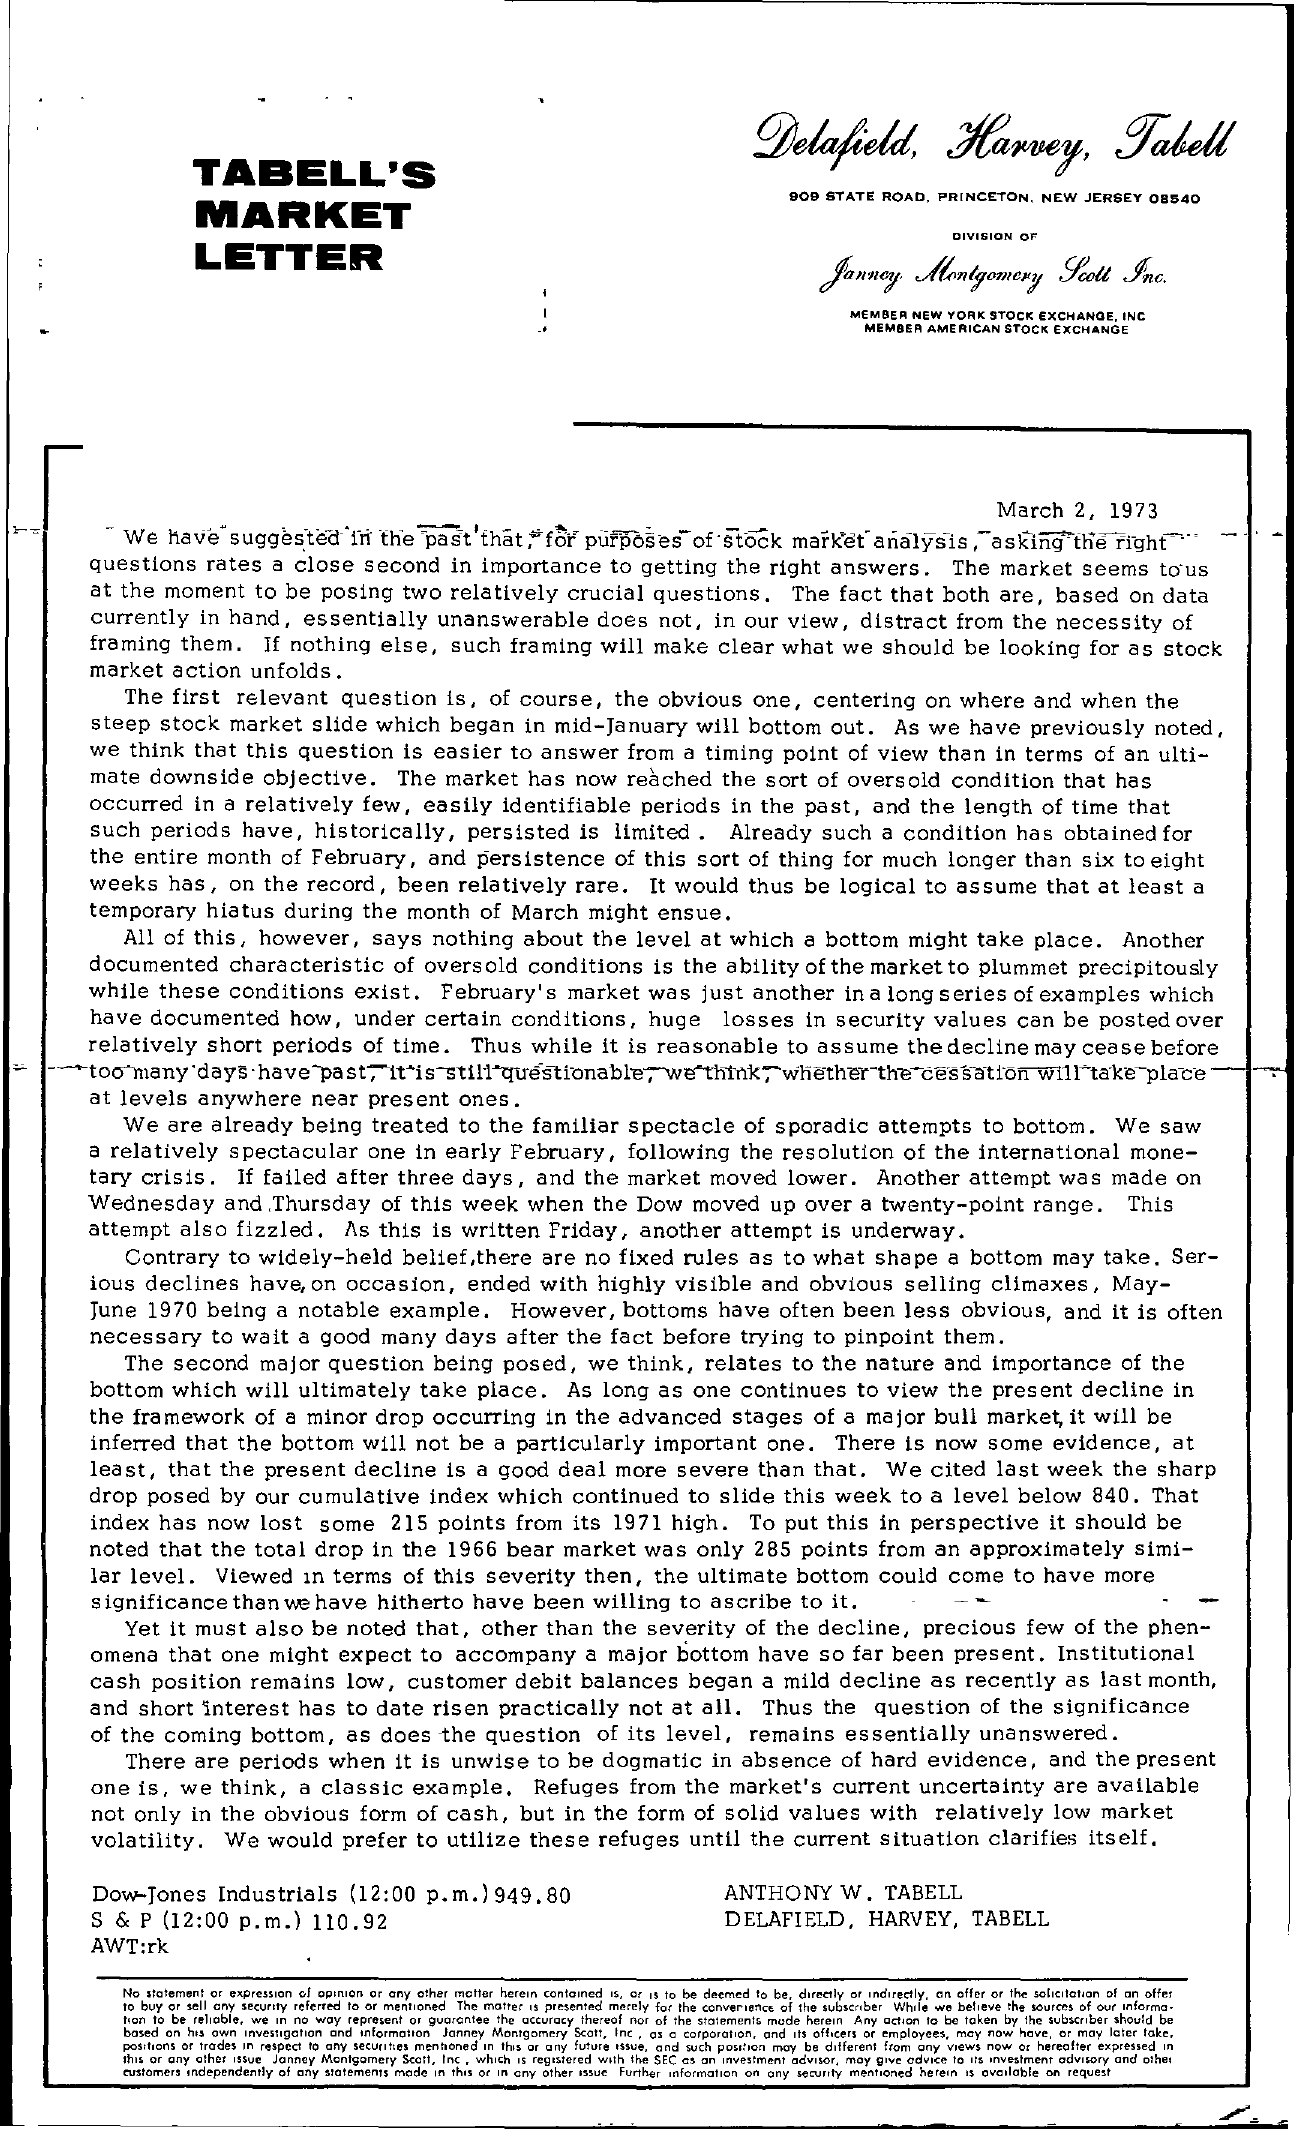 Tabell's Market Letter - March 02, 1973